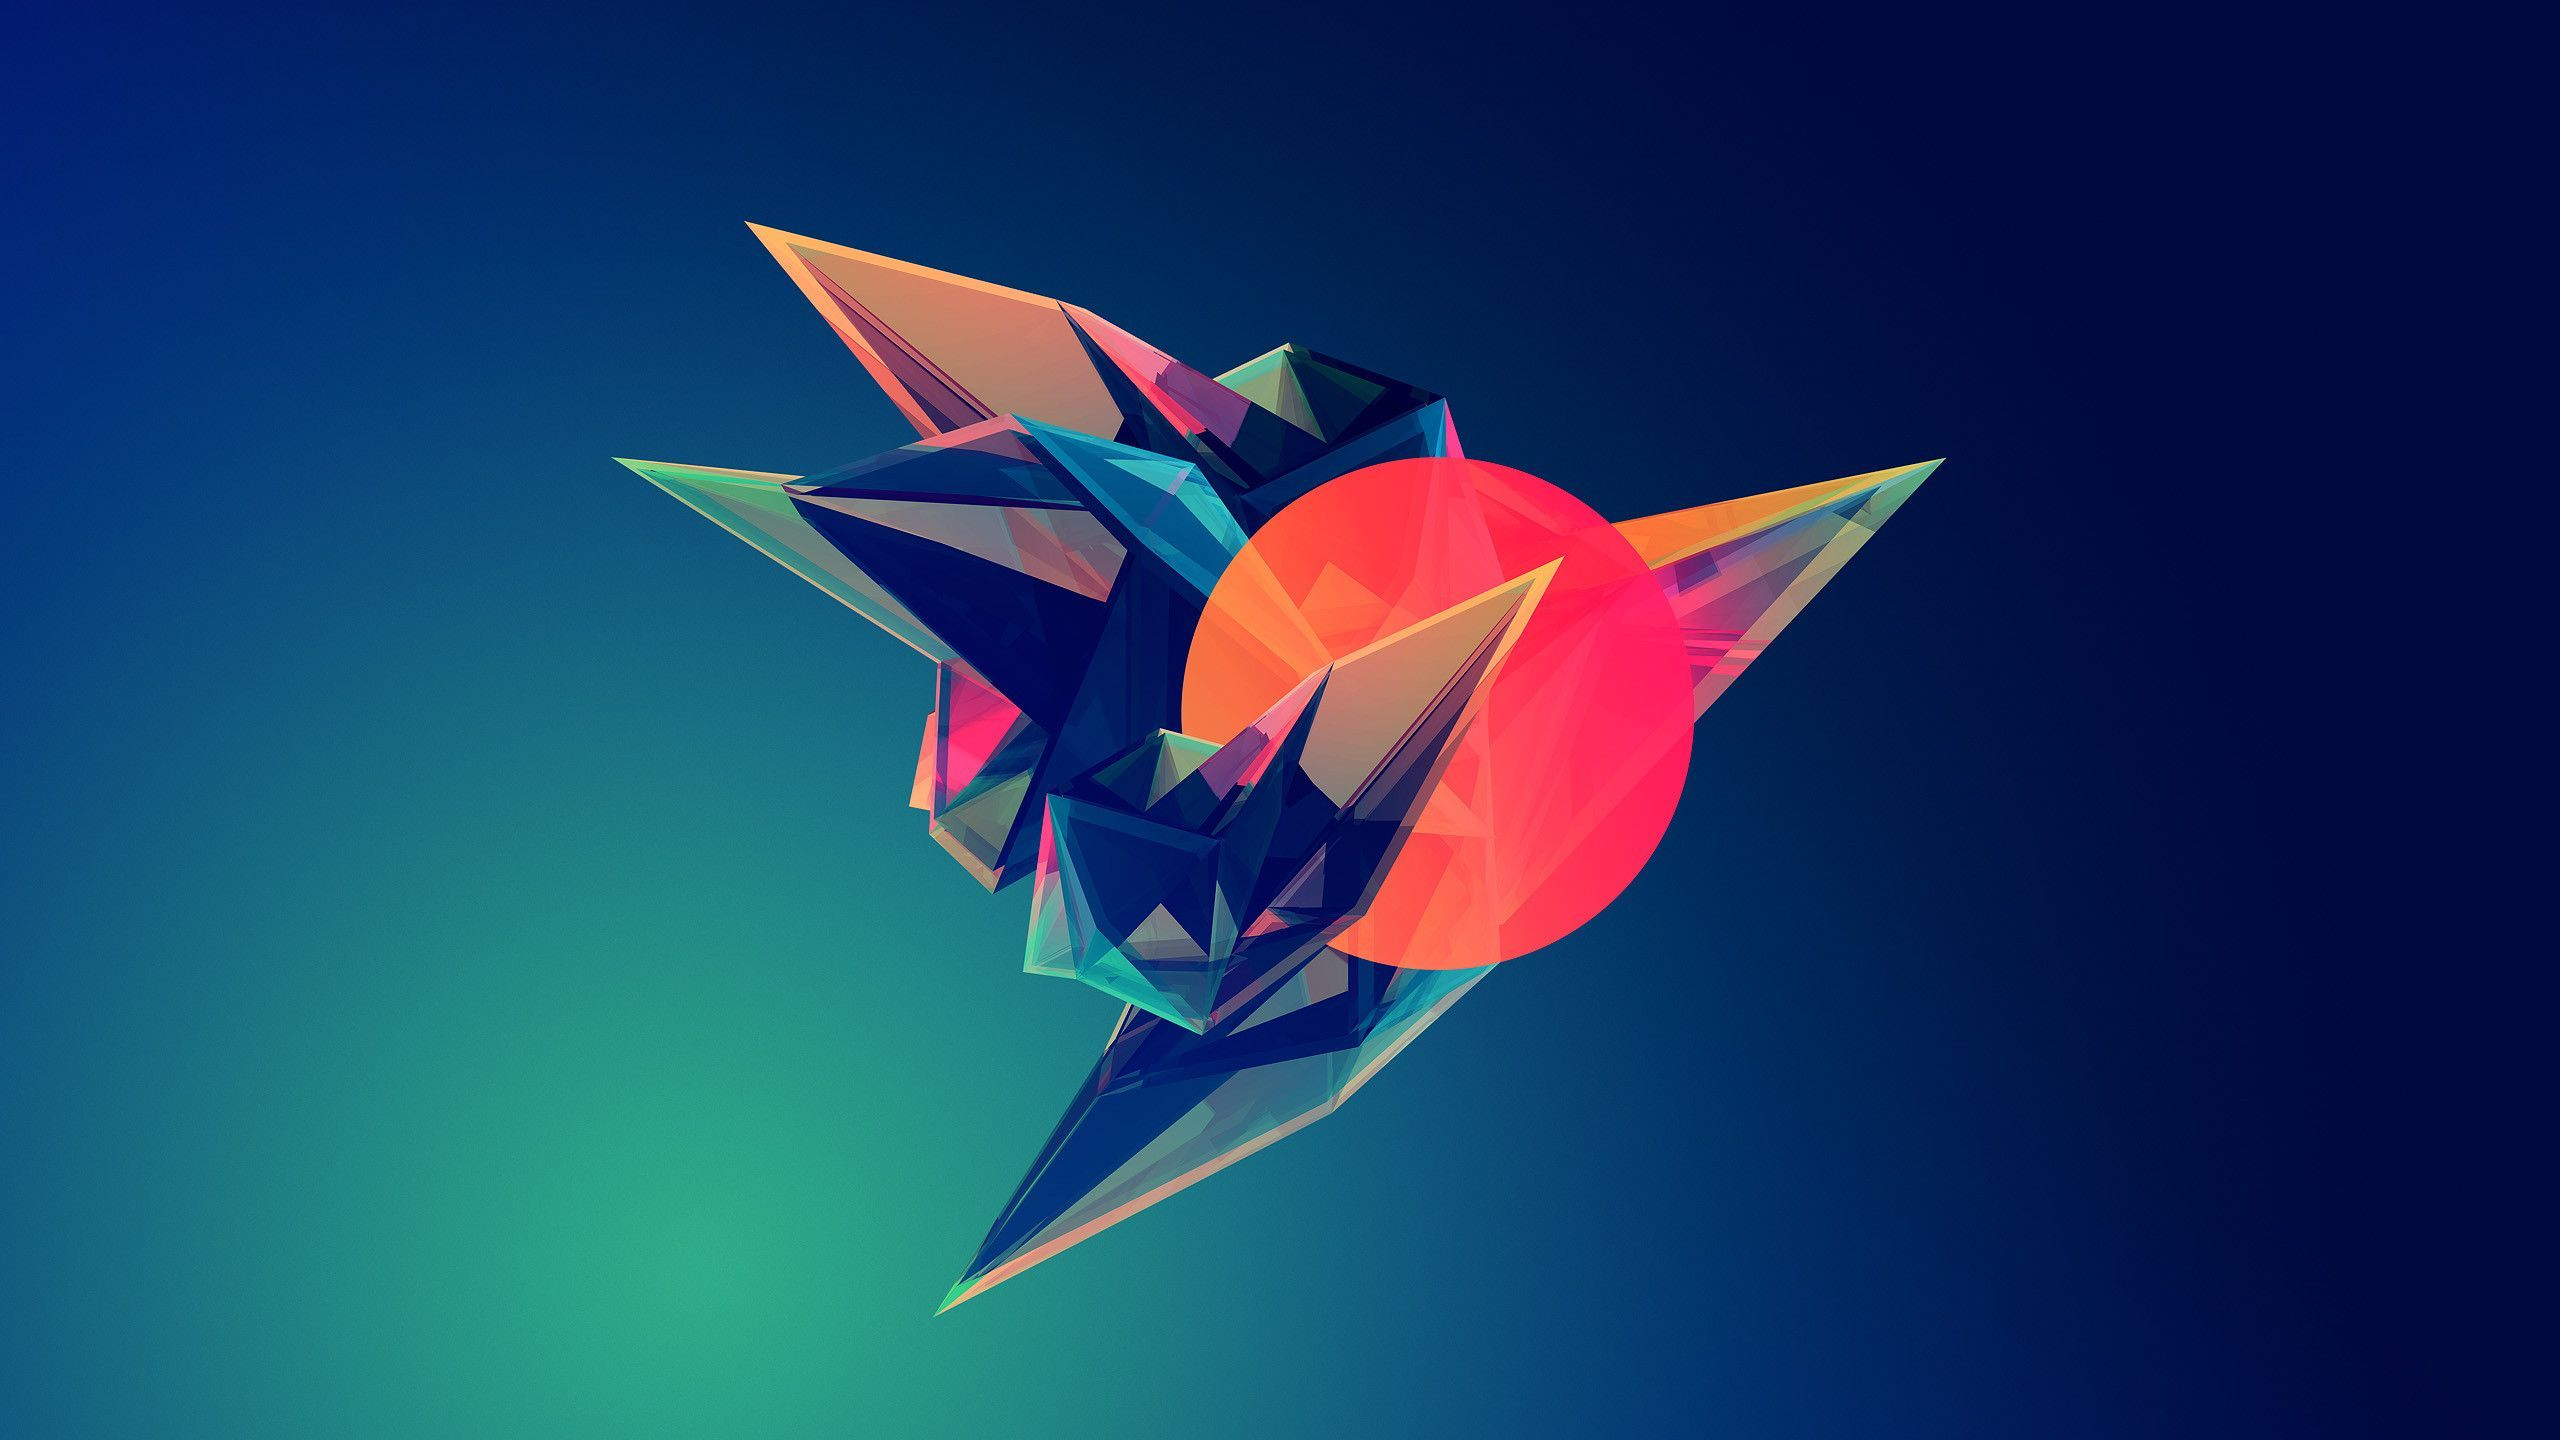 2560x1440 Hipster Triangle Post Modern Abstract Minimalist Art ...